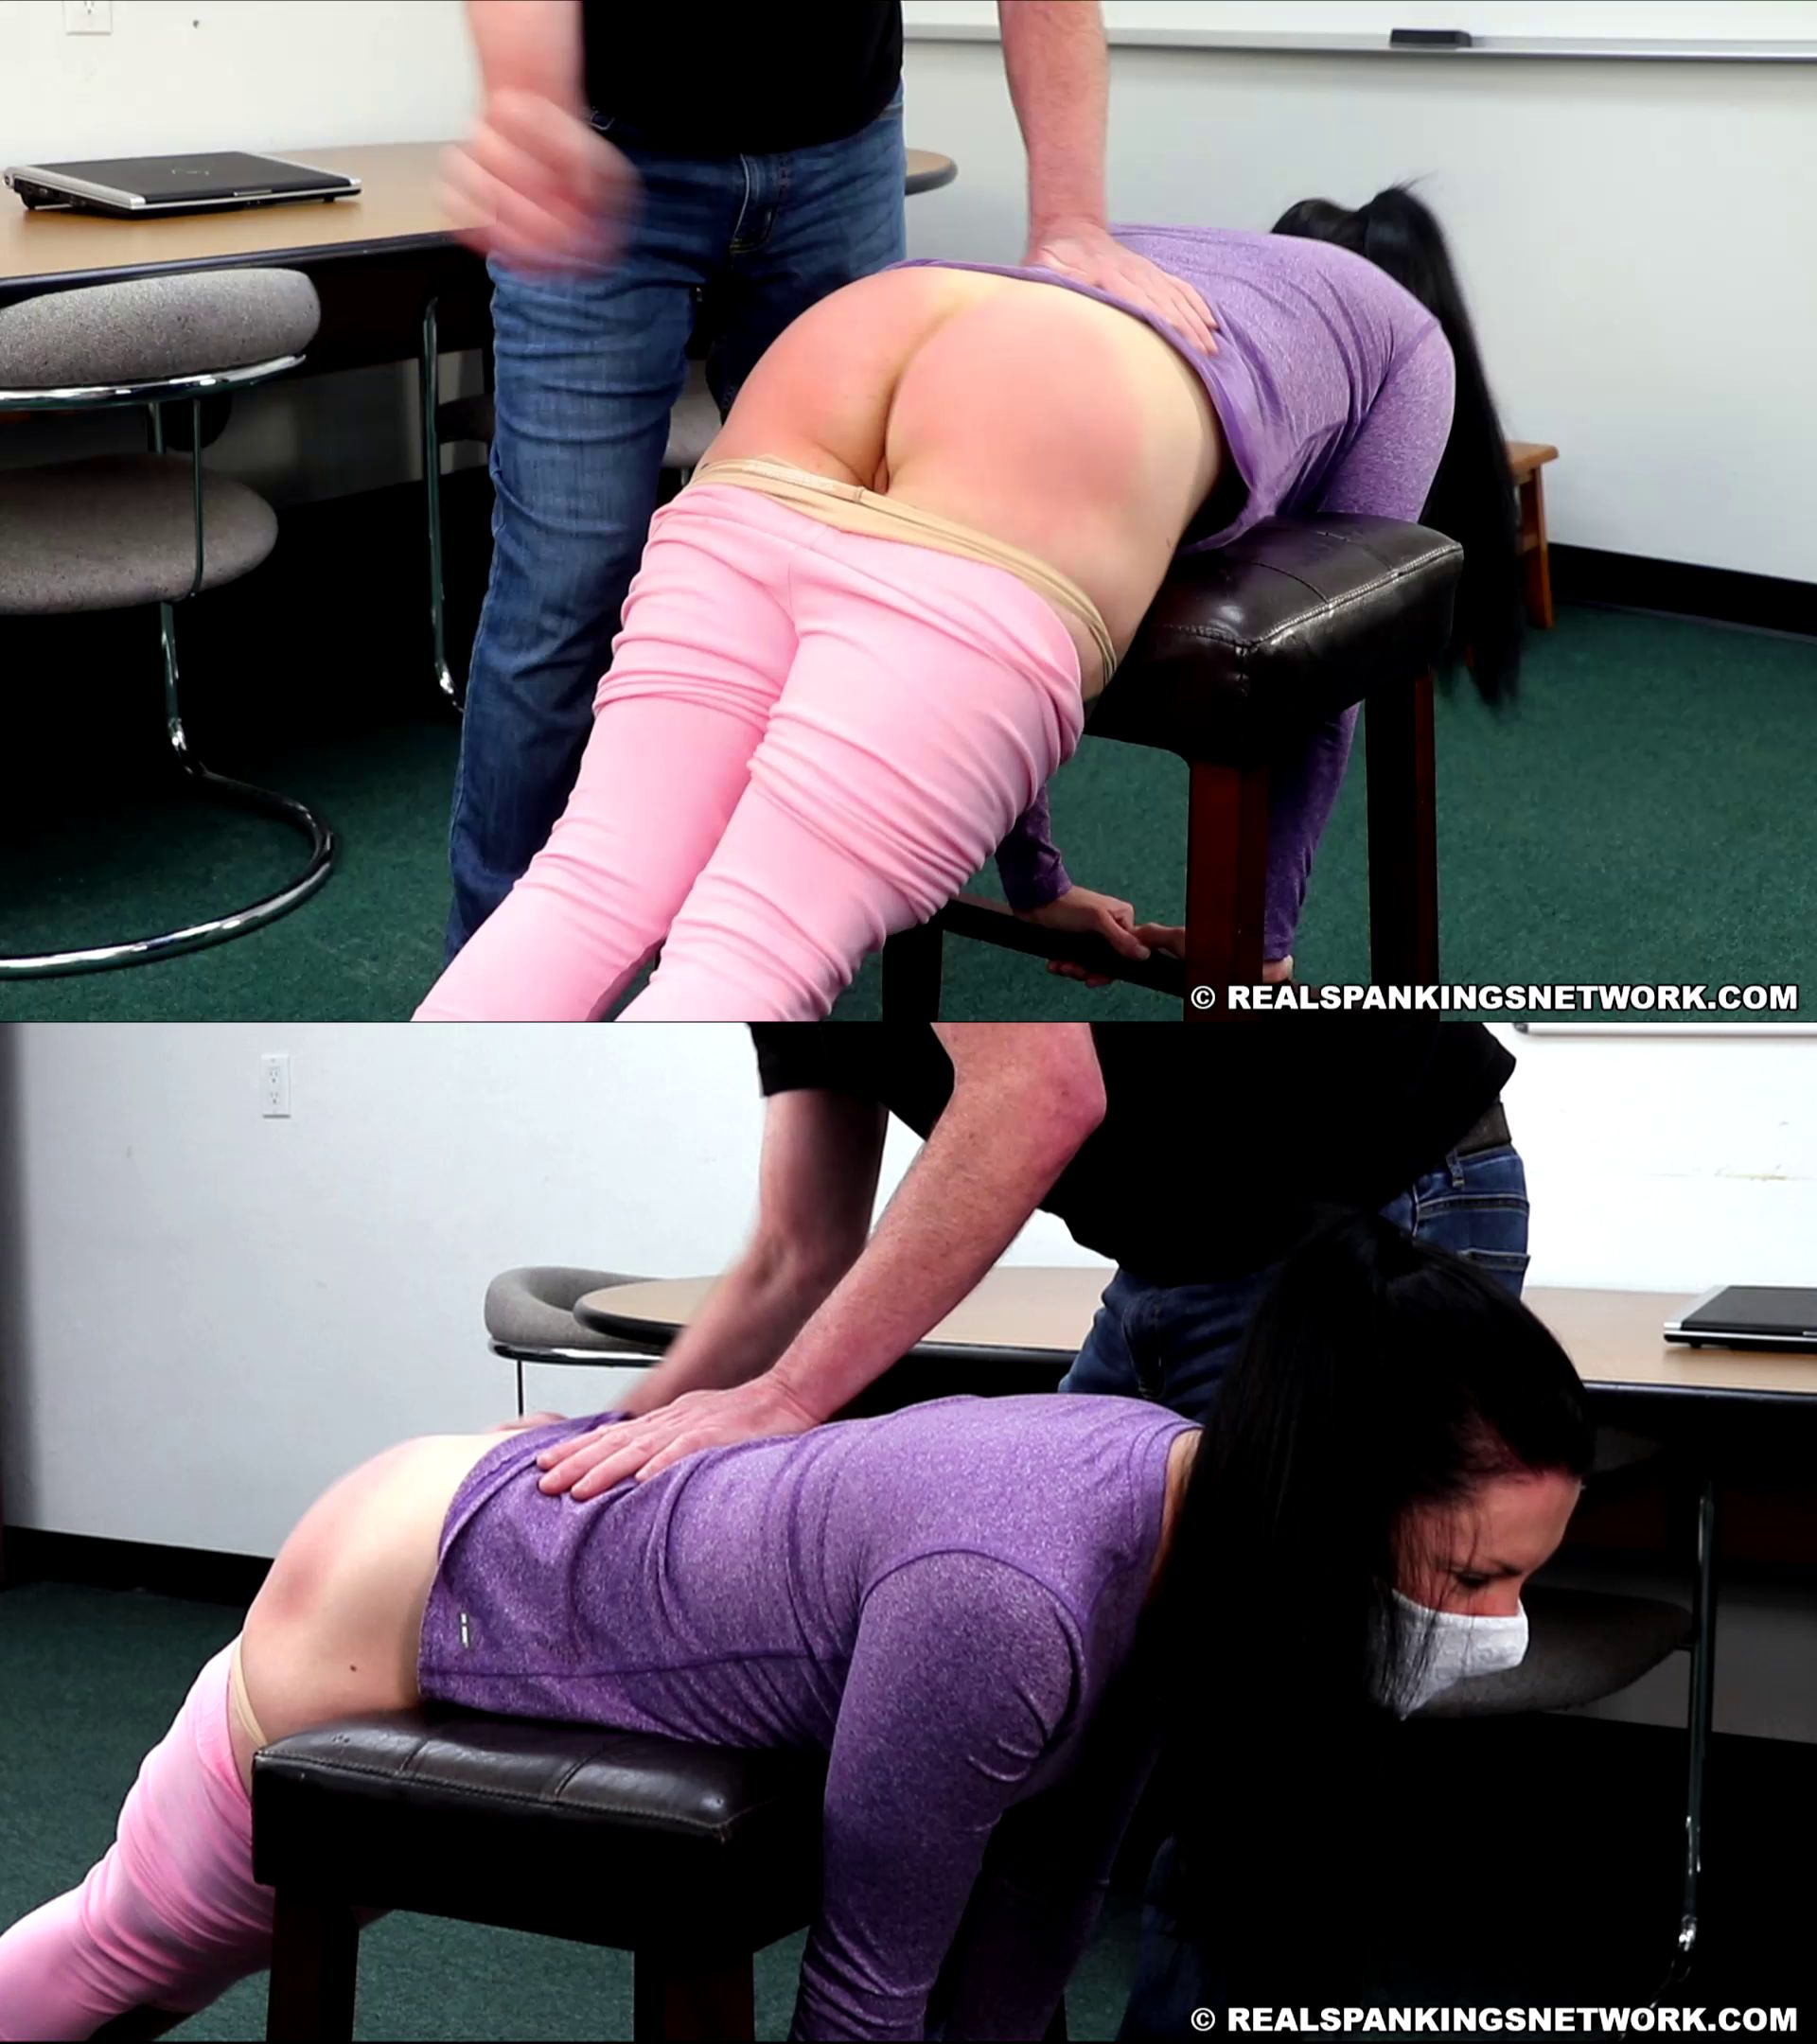 realspankingsinstitute – MP4/HD – Devin Jade – Devin's Two Part Punishment By The Dean (part 1 Of 2)